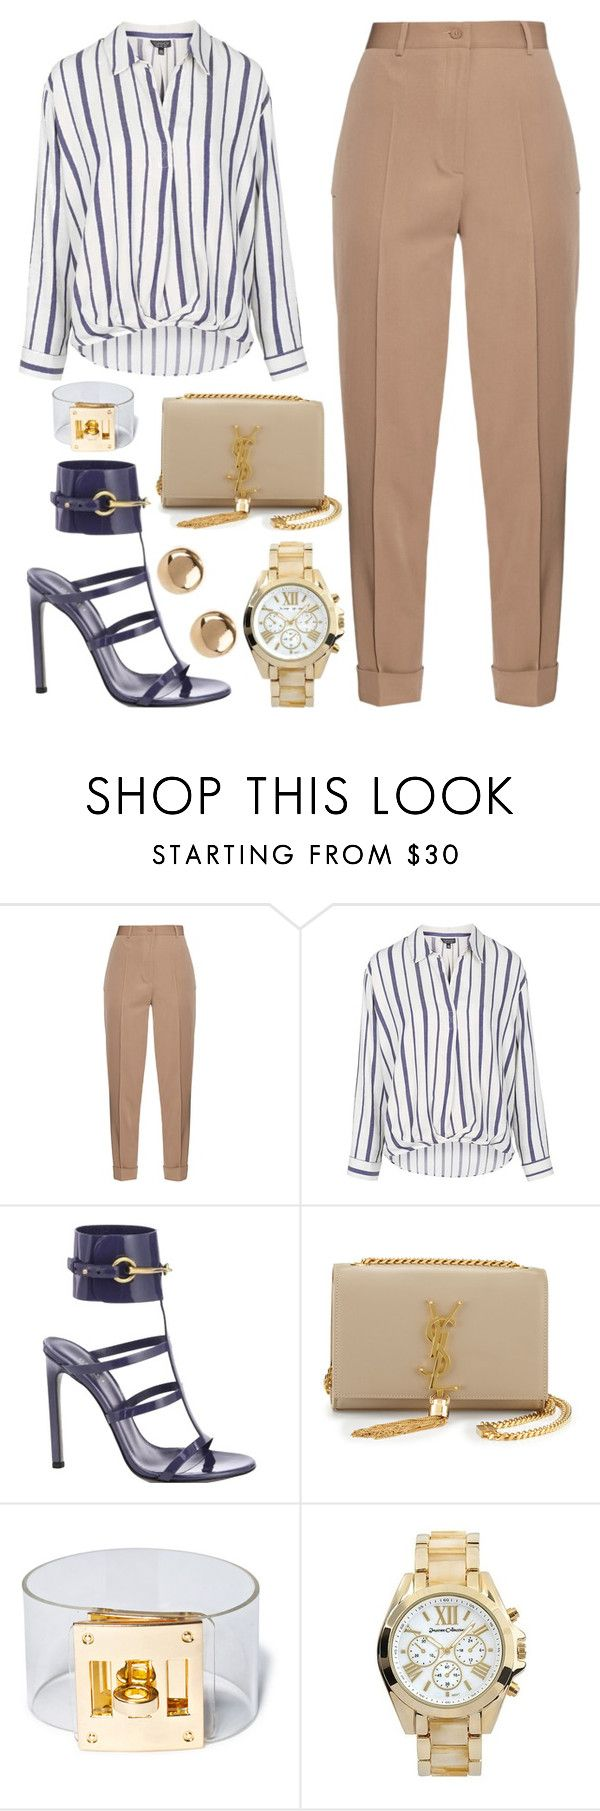 """""""Biddness"""" by kimeechanga ❤ liked on Polyvore featuring Bottega Veneta, Topshop, Gucci, Yves Saint Laurent, Suzywan DELUXE, Journee Collection and Jules Smith"""